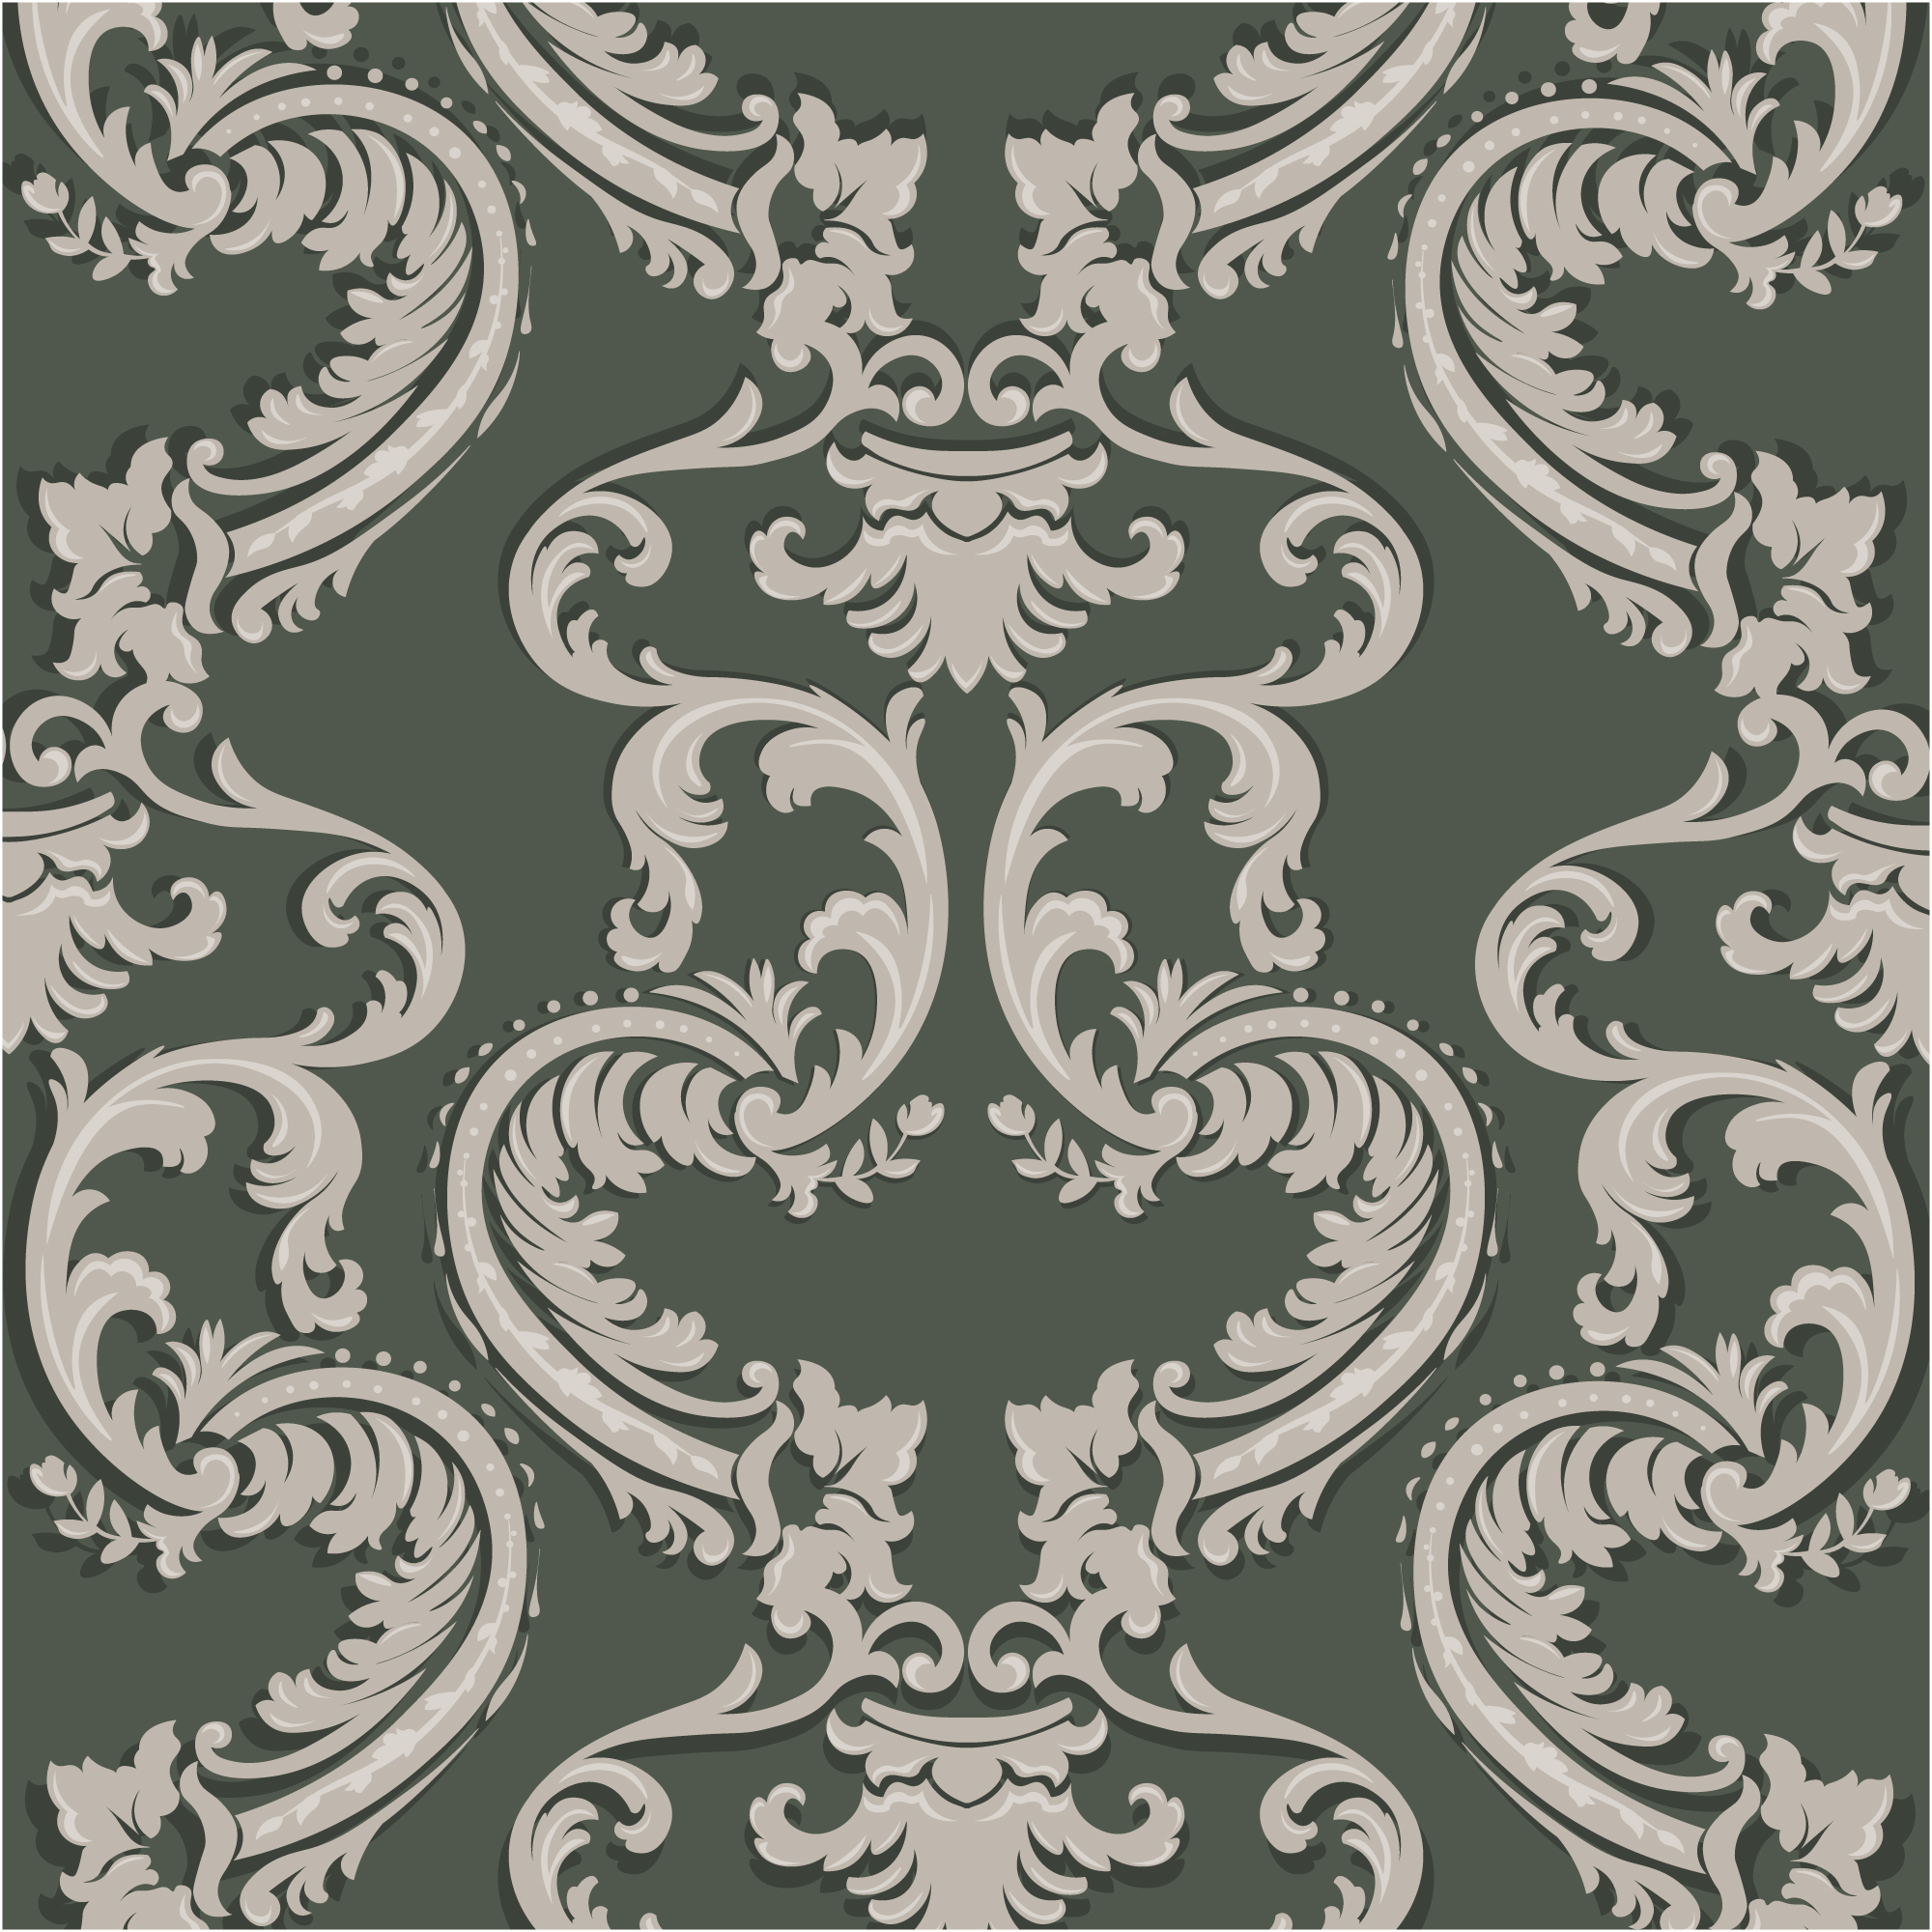 Dark colors ornamental pattern background